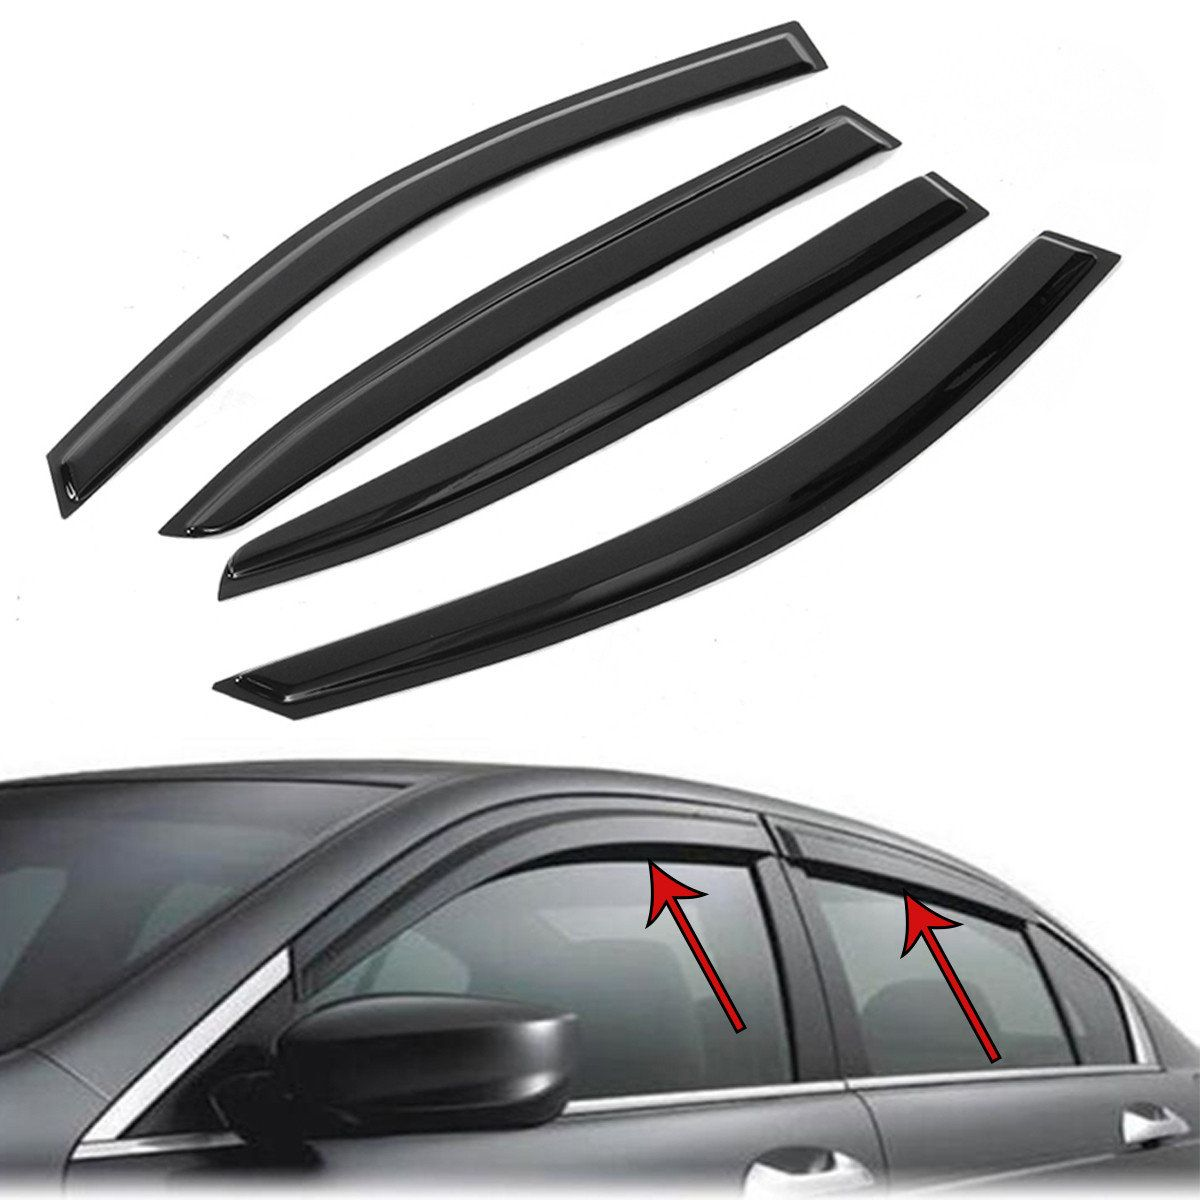 Us 20 19 Window Vent Visors Shield Rain Guards Sun Deflector For Honda Accord 4dr 08 12 Window Vent Viso Honda Accord Window Vents Old Car Parts